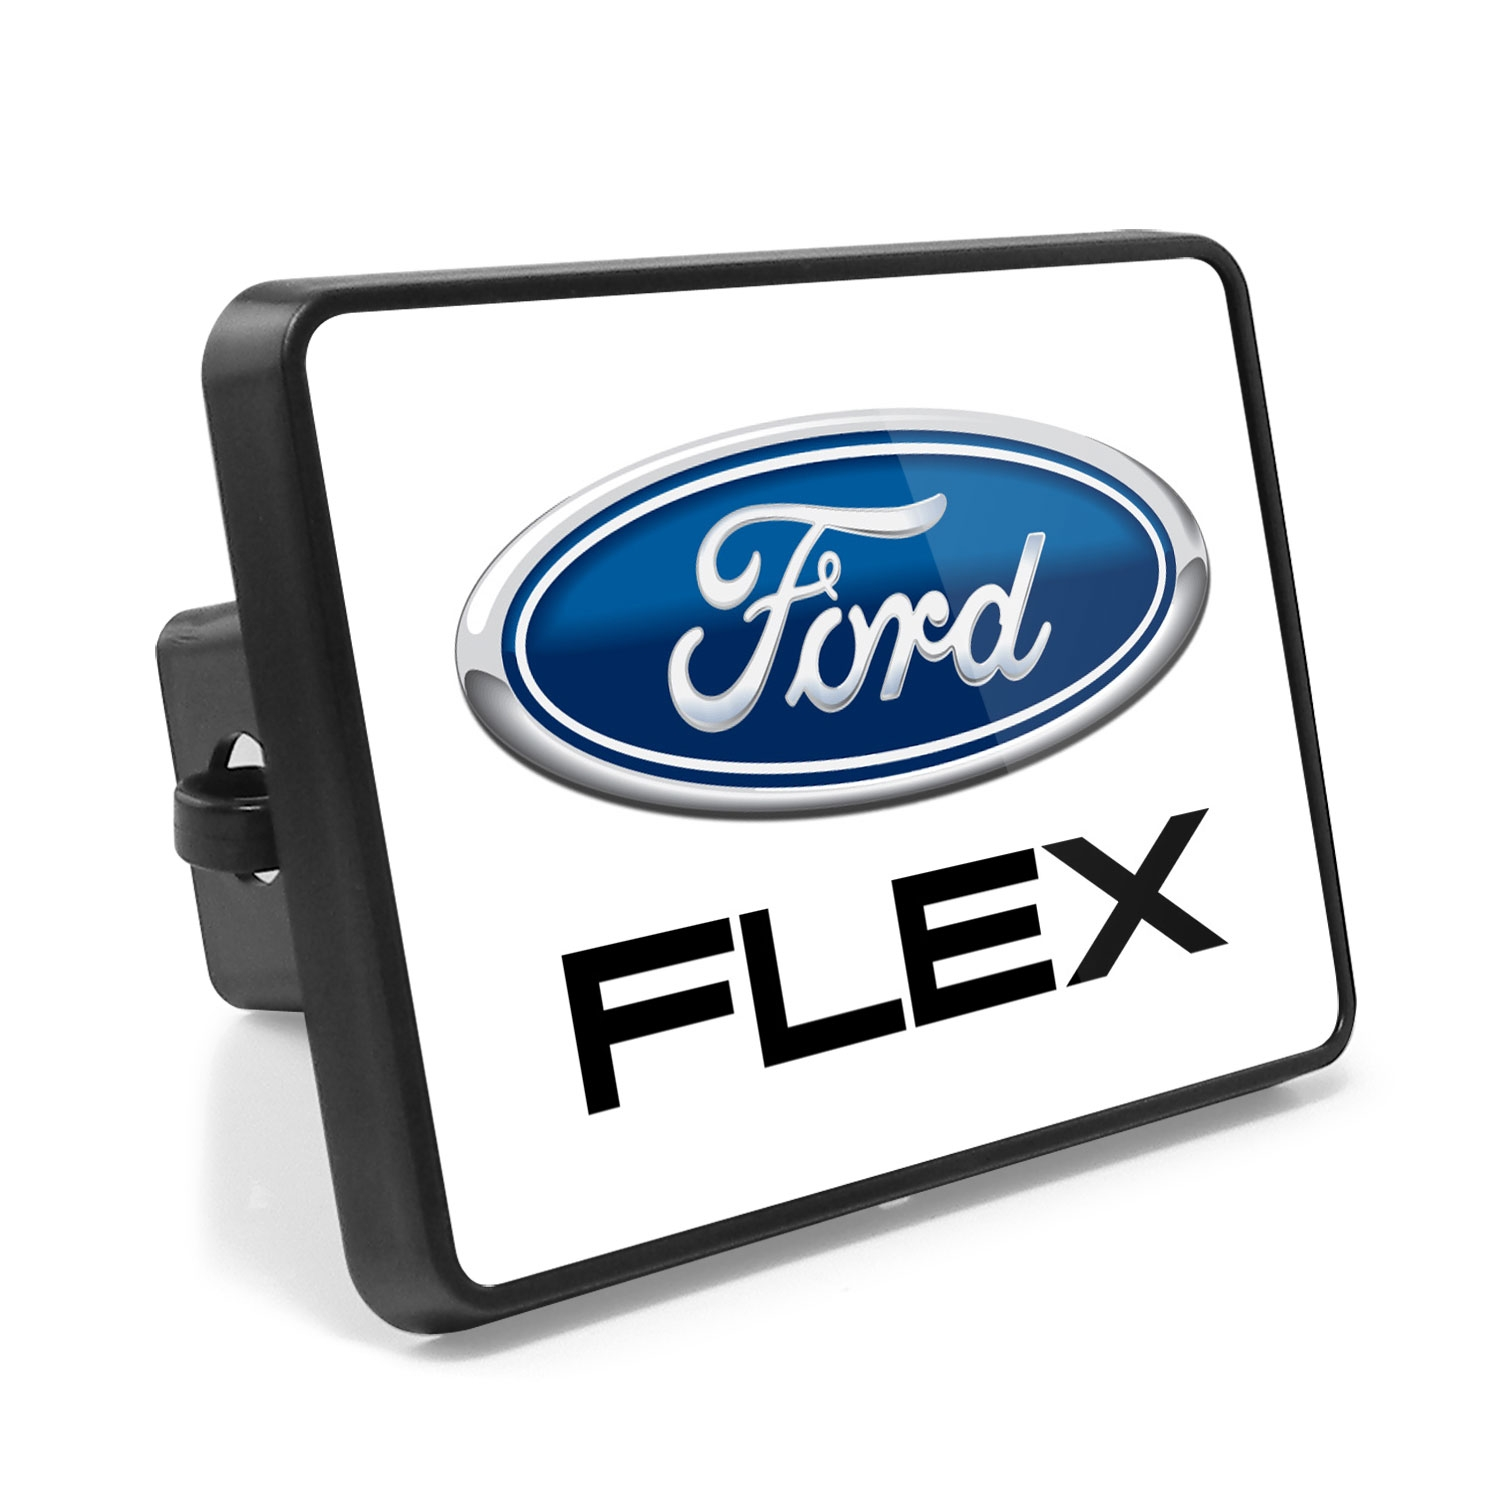 Ford Flex UV Graphic White Metal Plate on ABS Plastic 2 inch Tow Hitch Cover